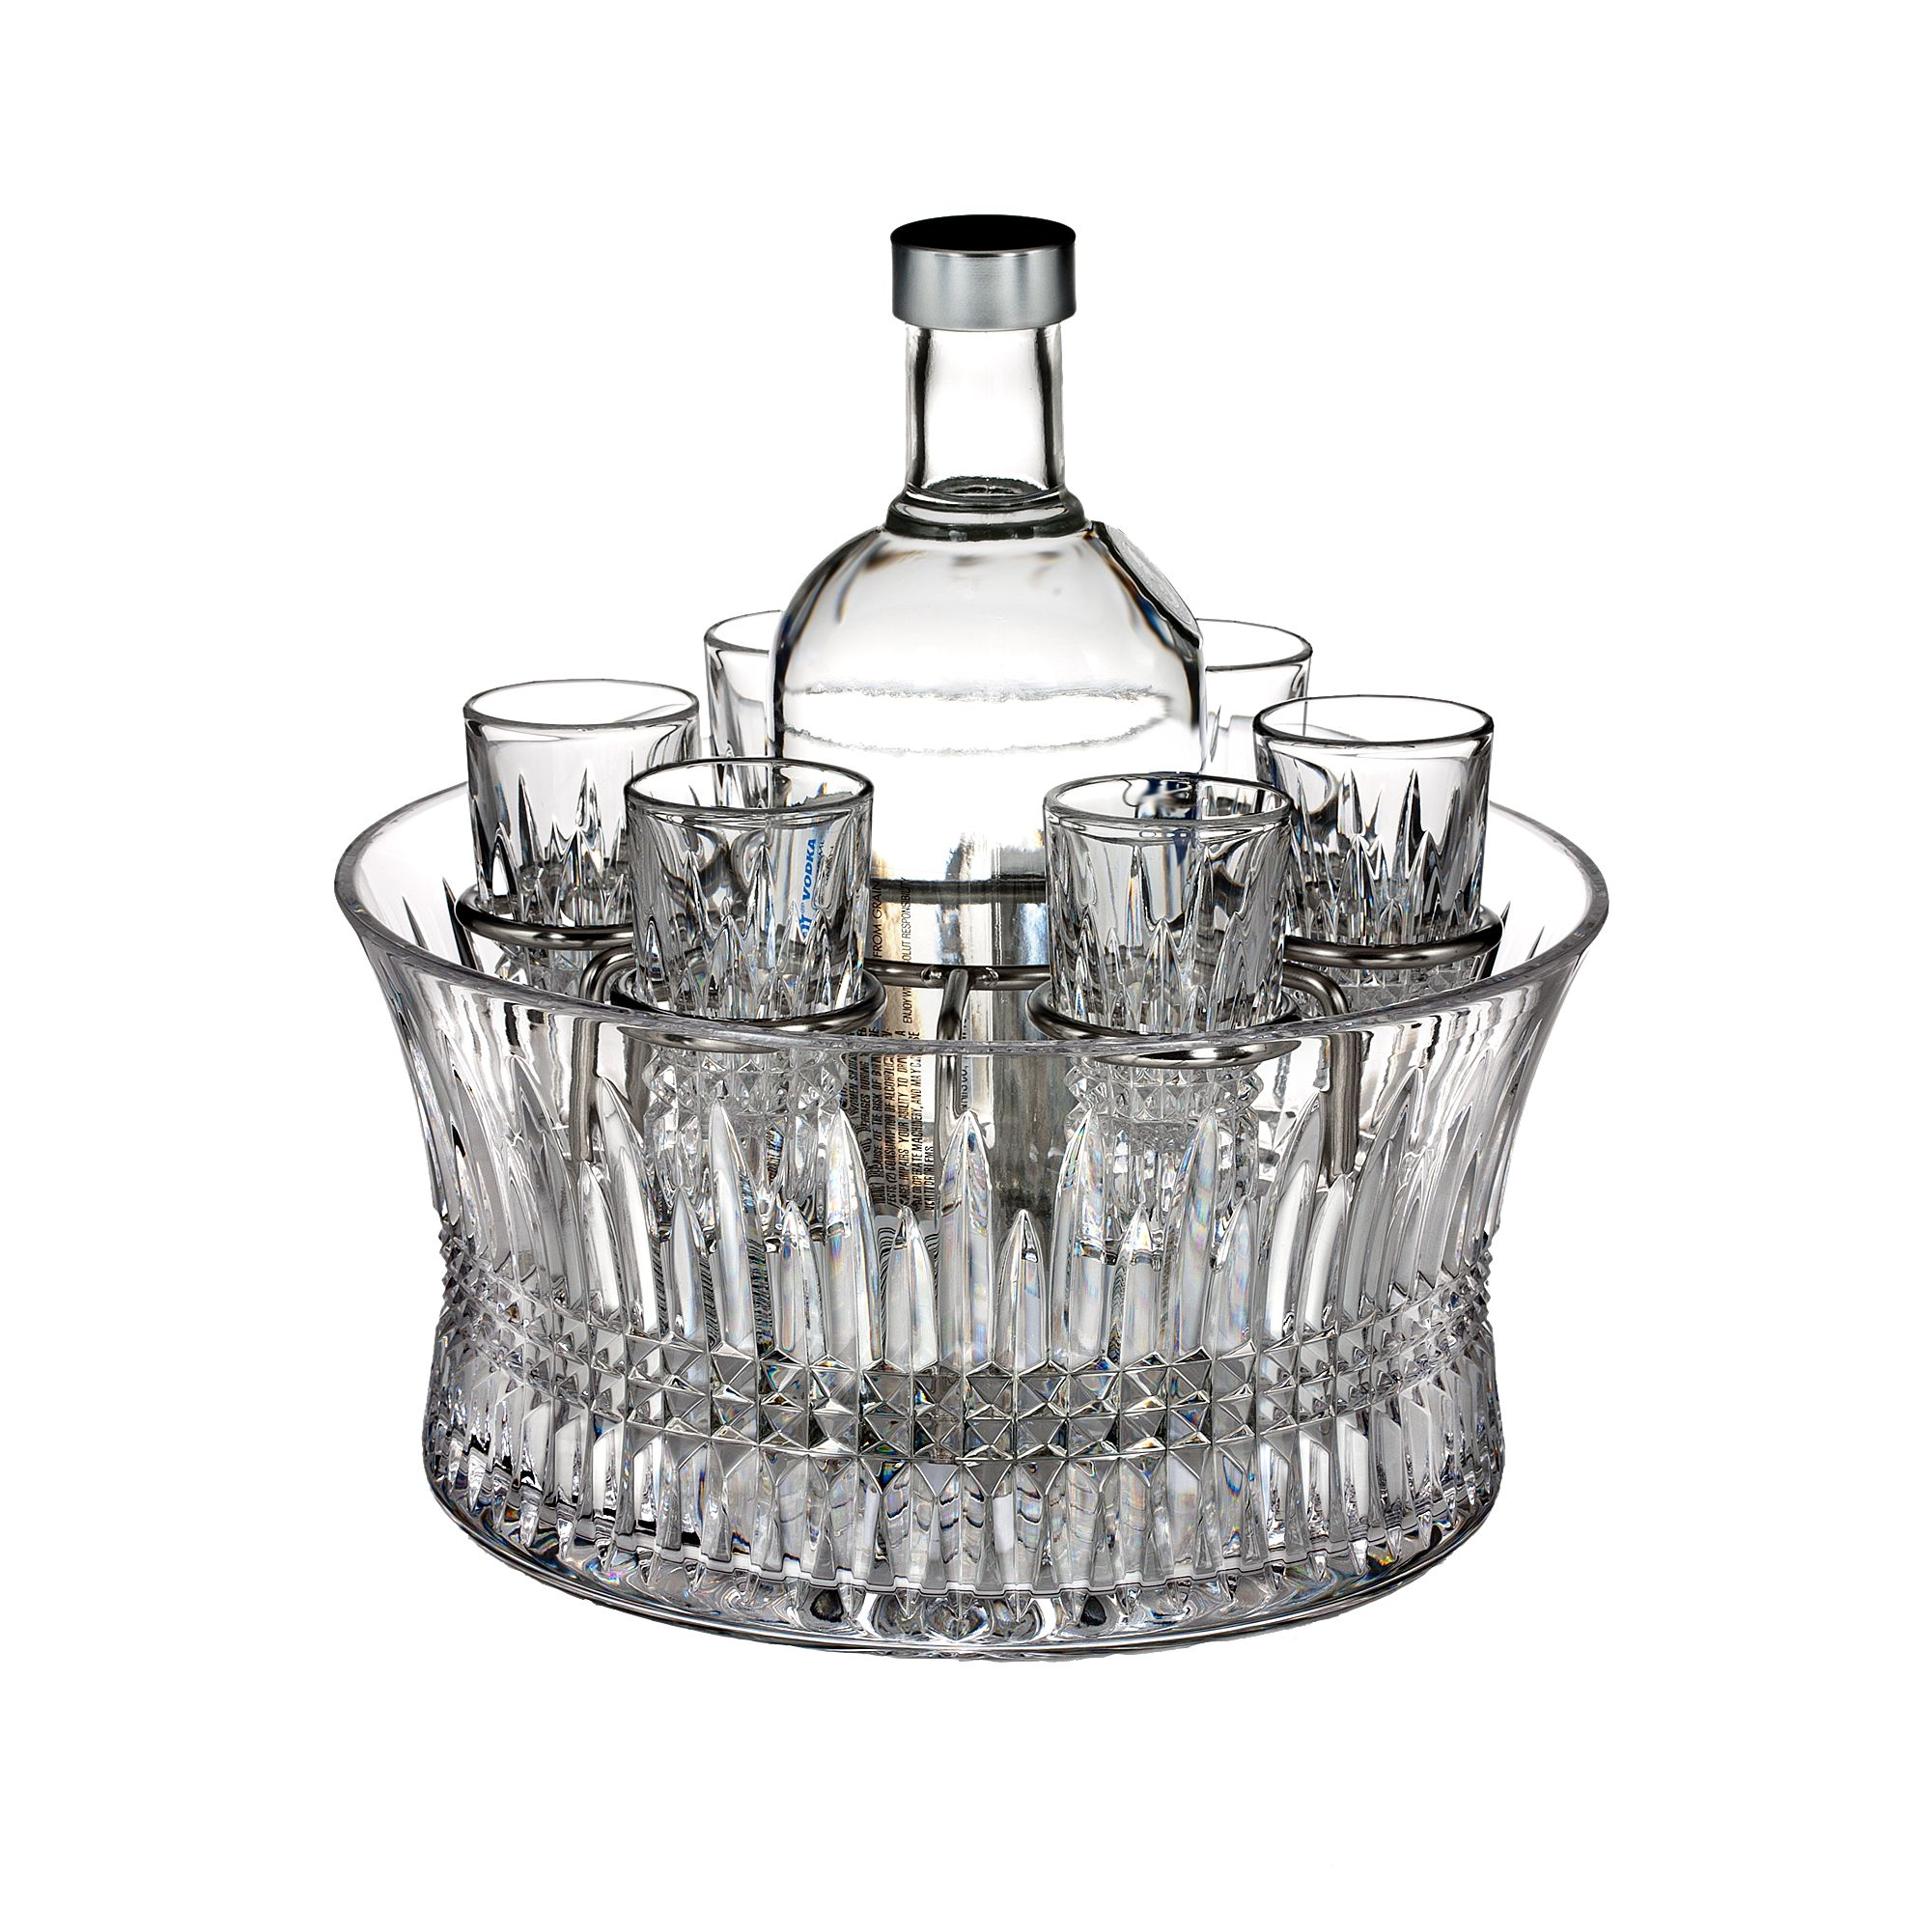 Diamond vodka set in chill bowl